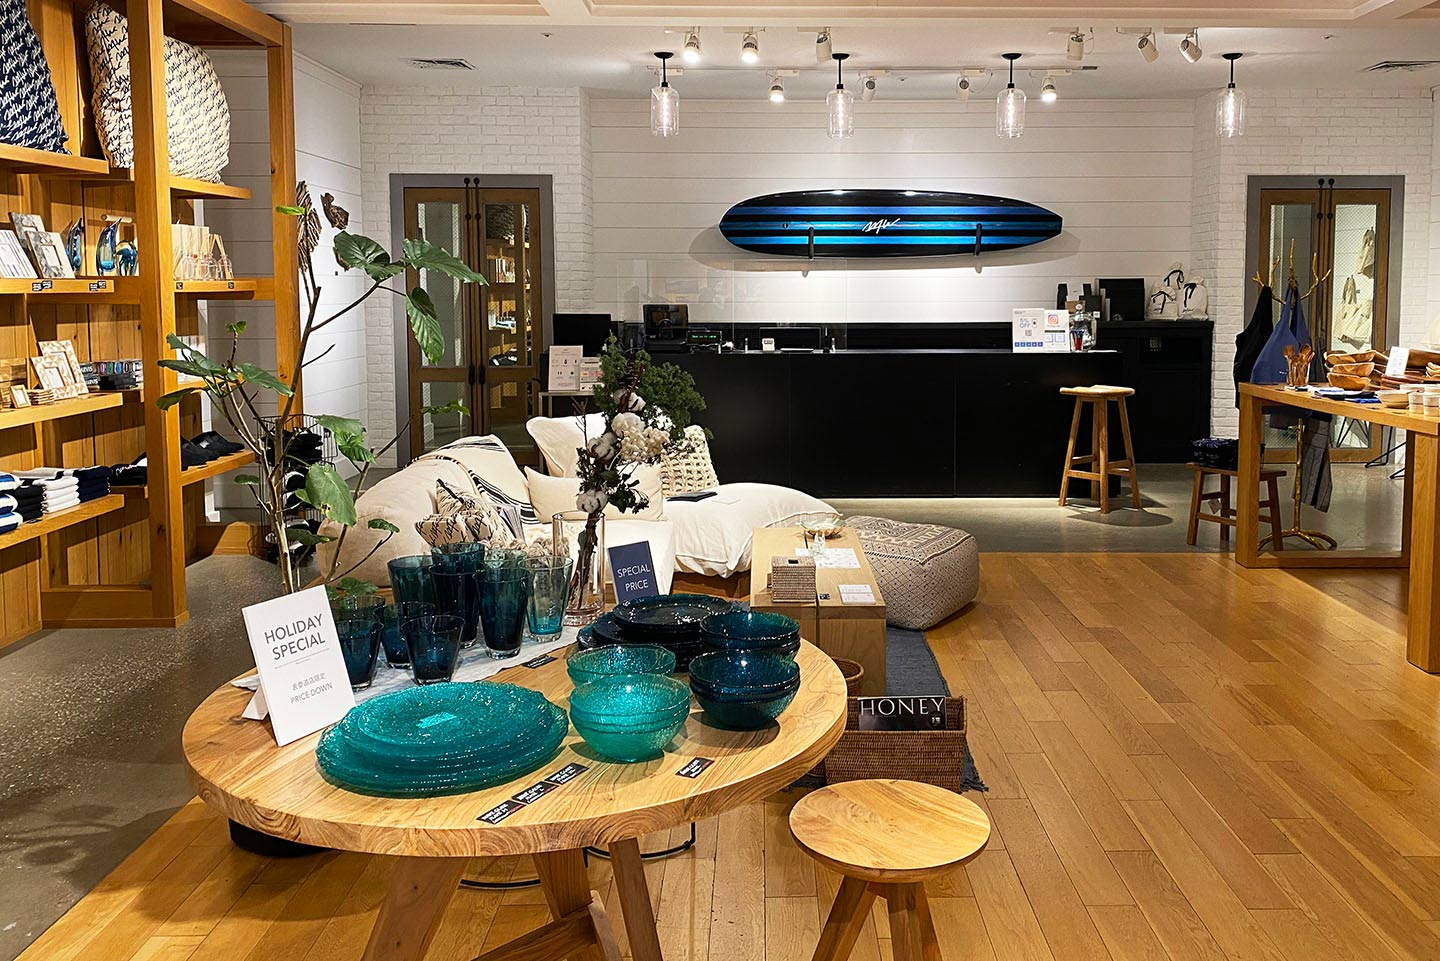 20 Best Miscellaneous Goods Shop in Harajuku & Omotesando